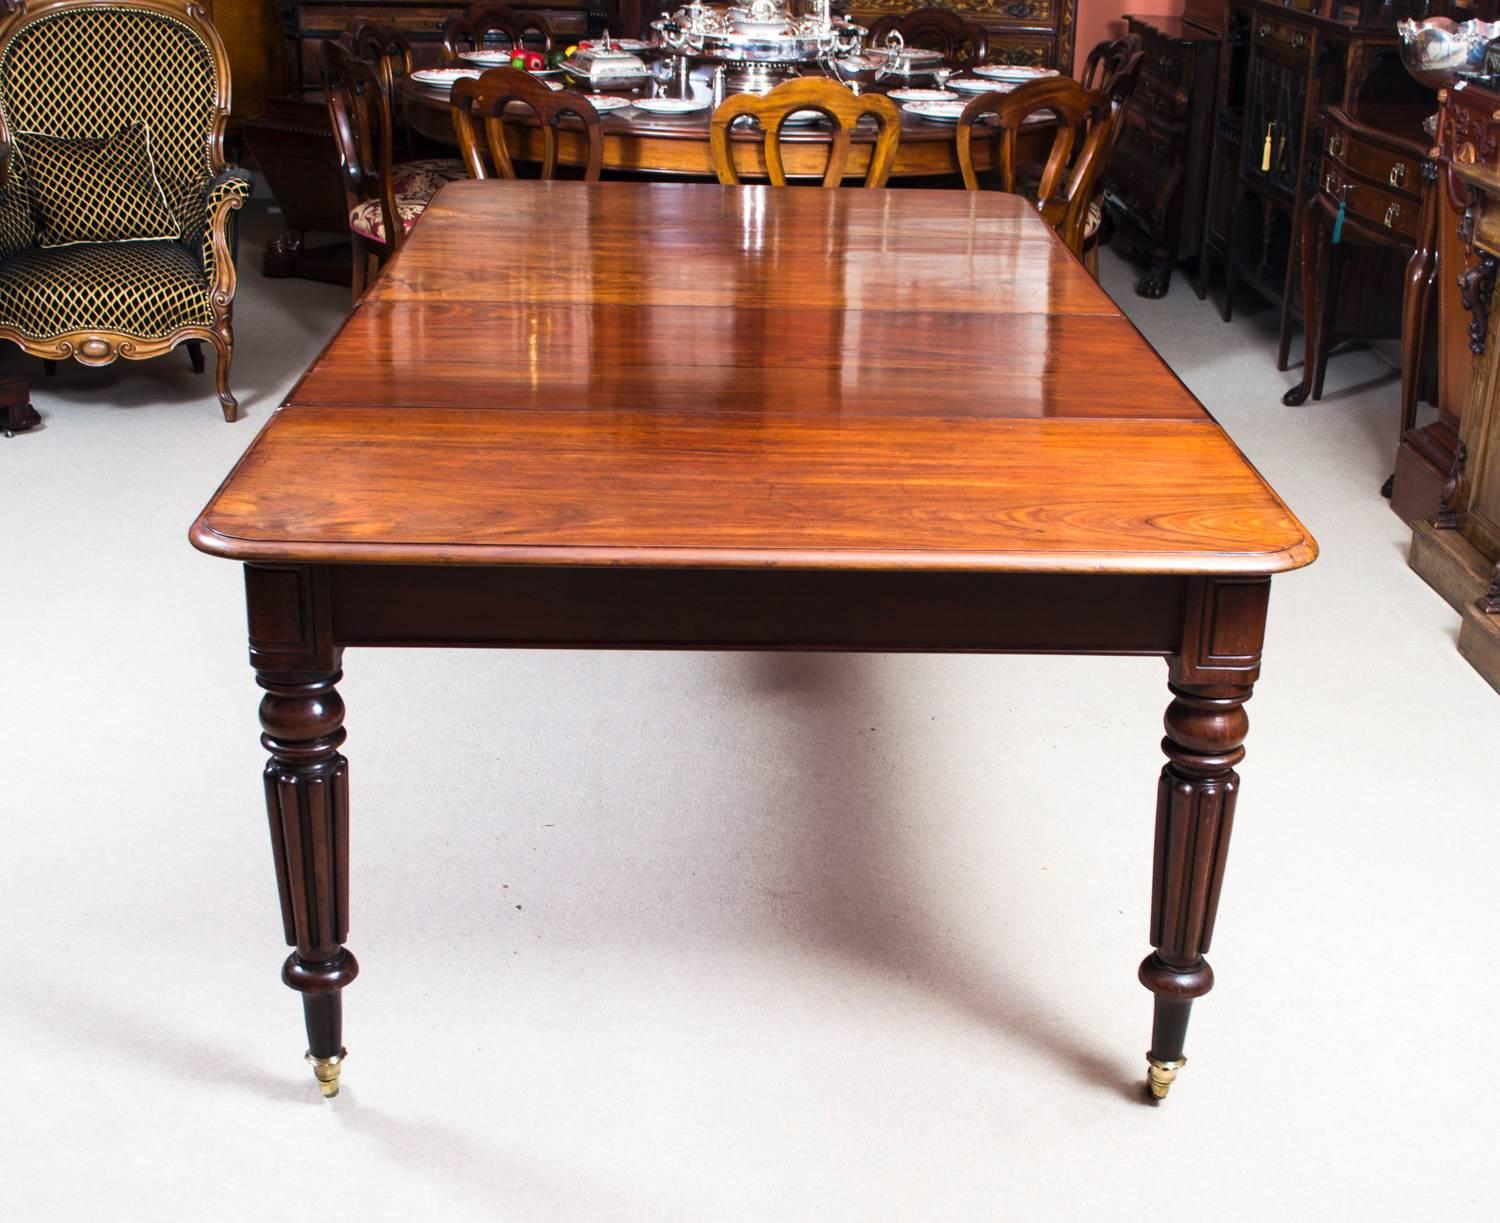 Antique Regency Mahogany Gillows Style Dining Table, Circa